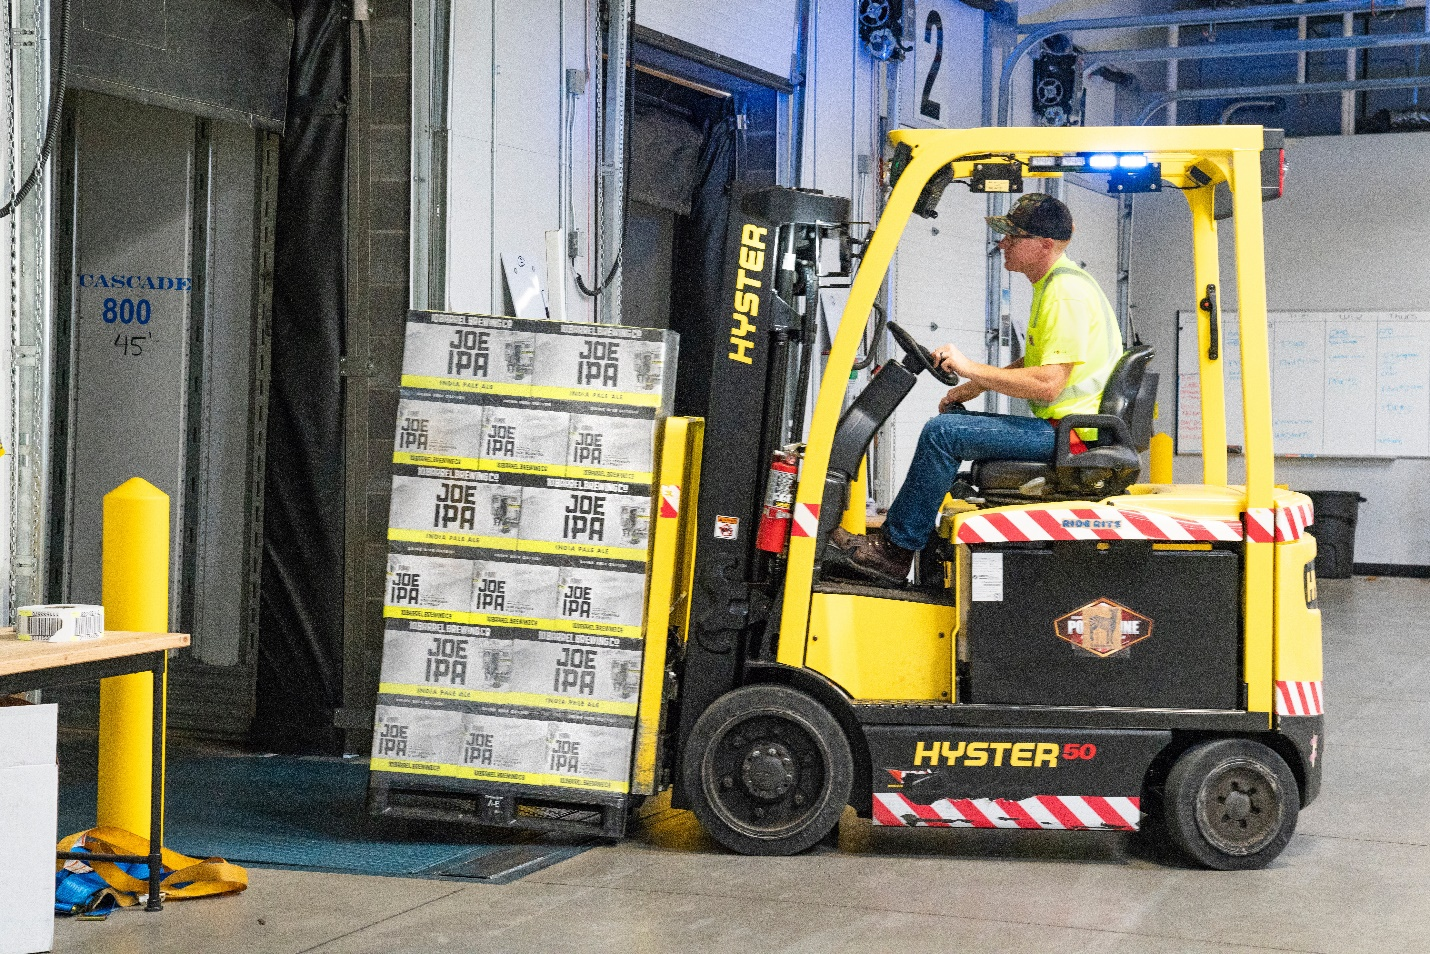 Forklift training enhances safety in the workplace